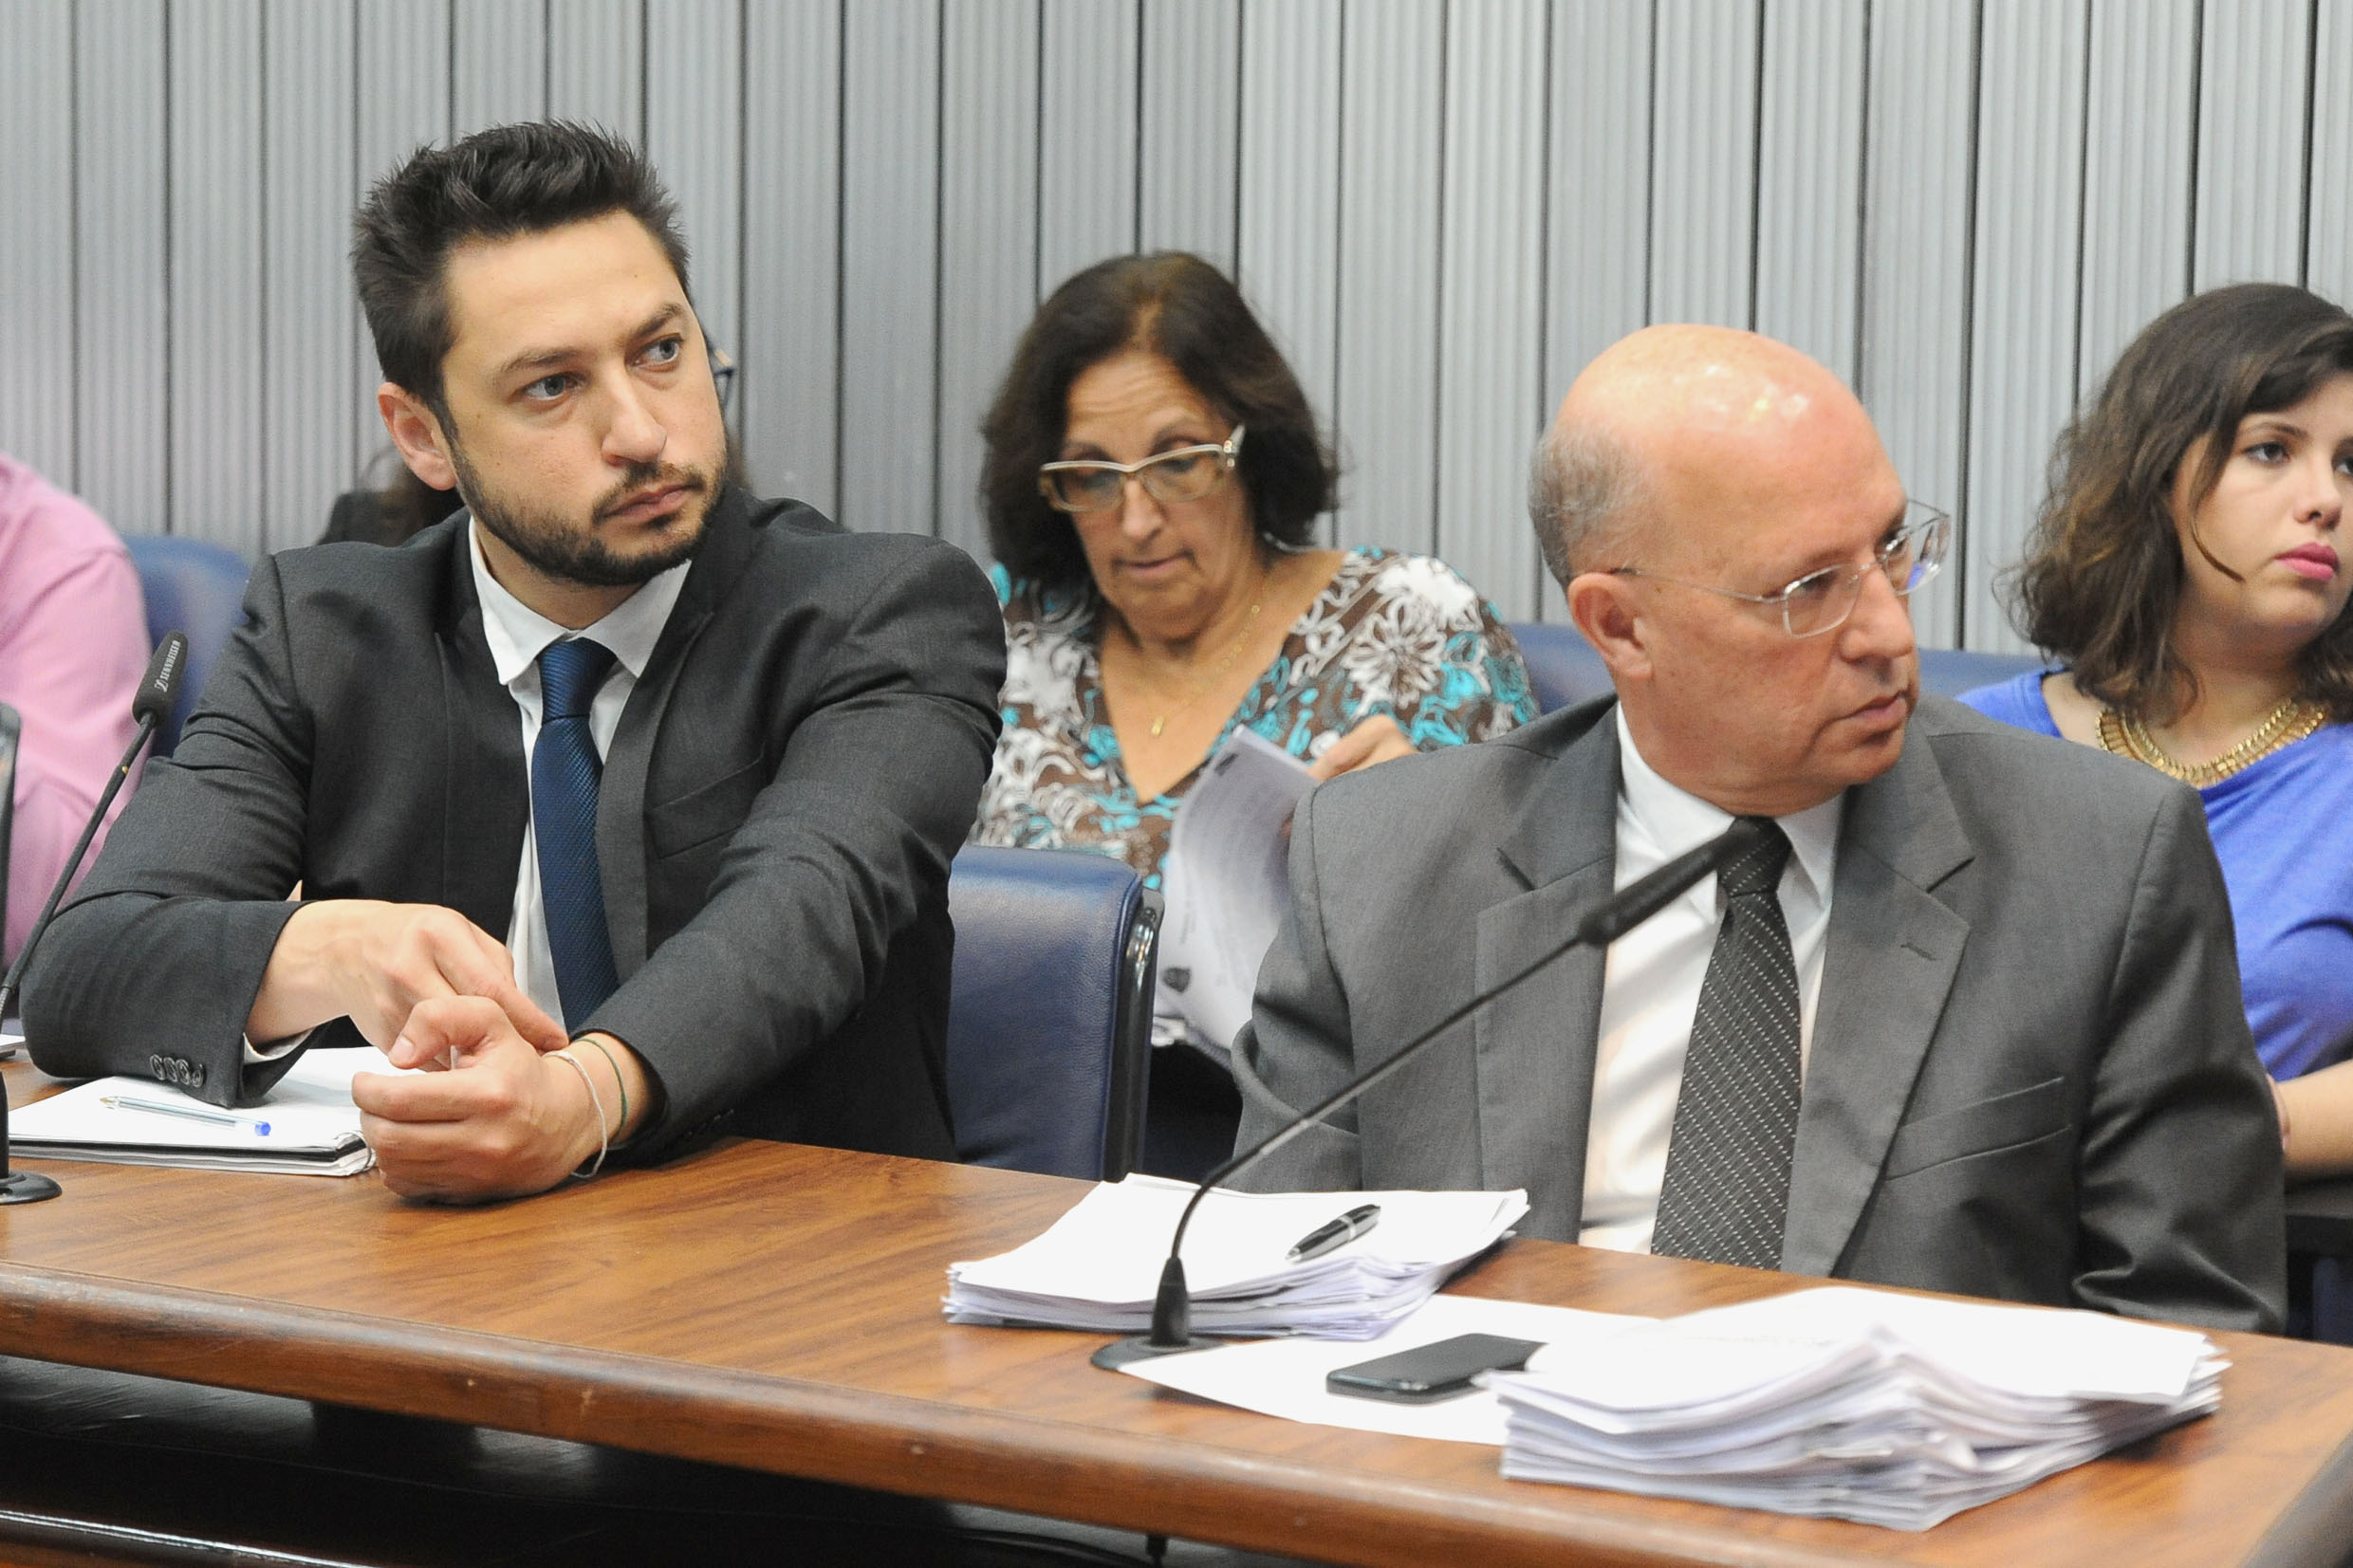 Parlamentares na CPI<a style='float:right' href='https://www3.al.sp.gov.br/repositorio/noticia/N-06-2018/fg224626.jpg' target=_blank><img src='/_img/material-file-download-white.png' width='14px' alt='Clique para baixar a imagem'></a>